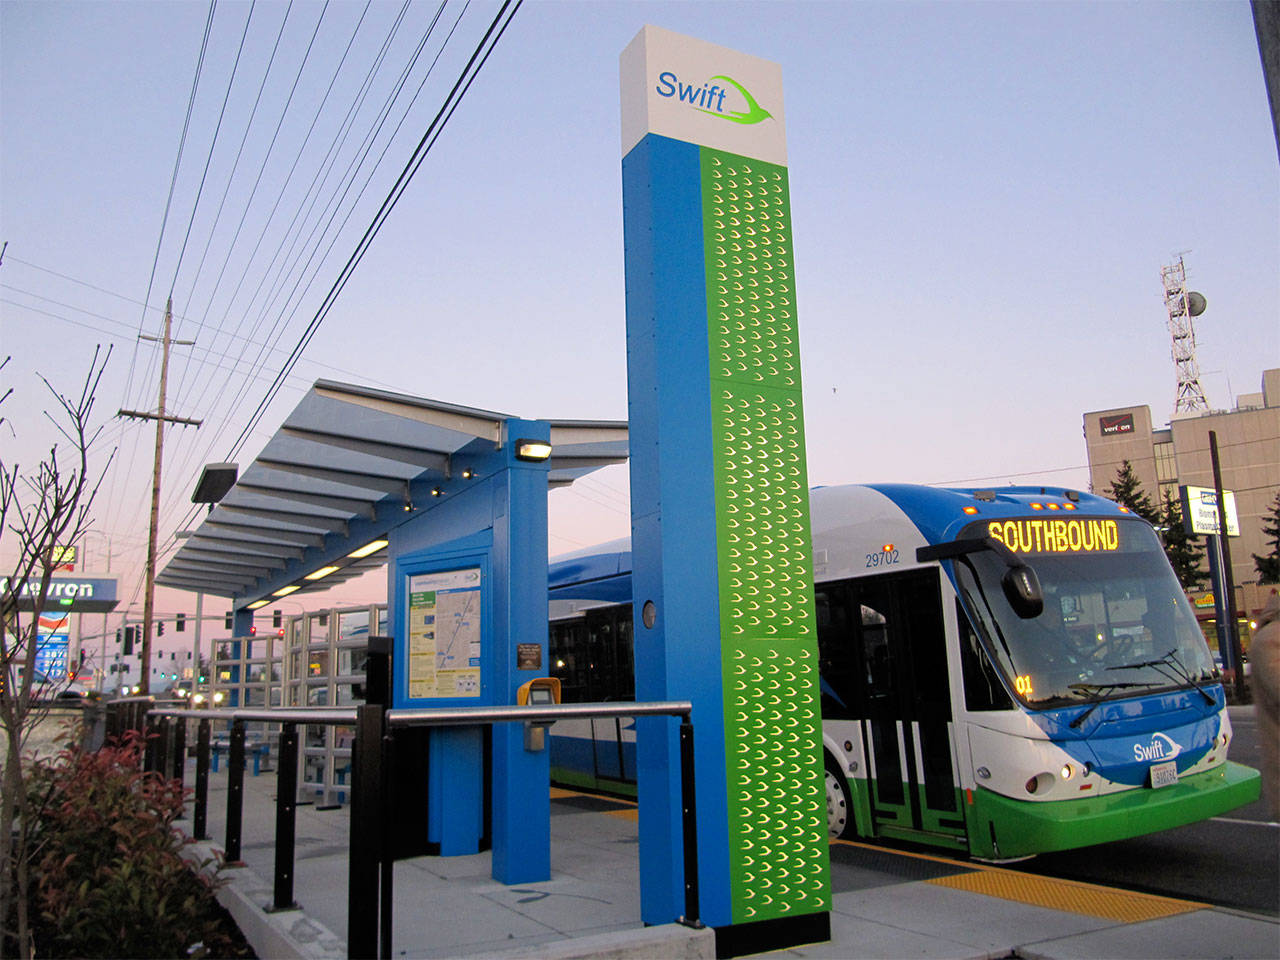 A Community Transit Swift bus line station on Evergreen Way in Everett, just south of Casino Road. (Community Transit photo)